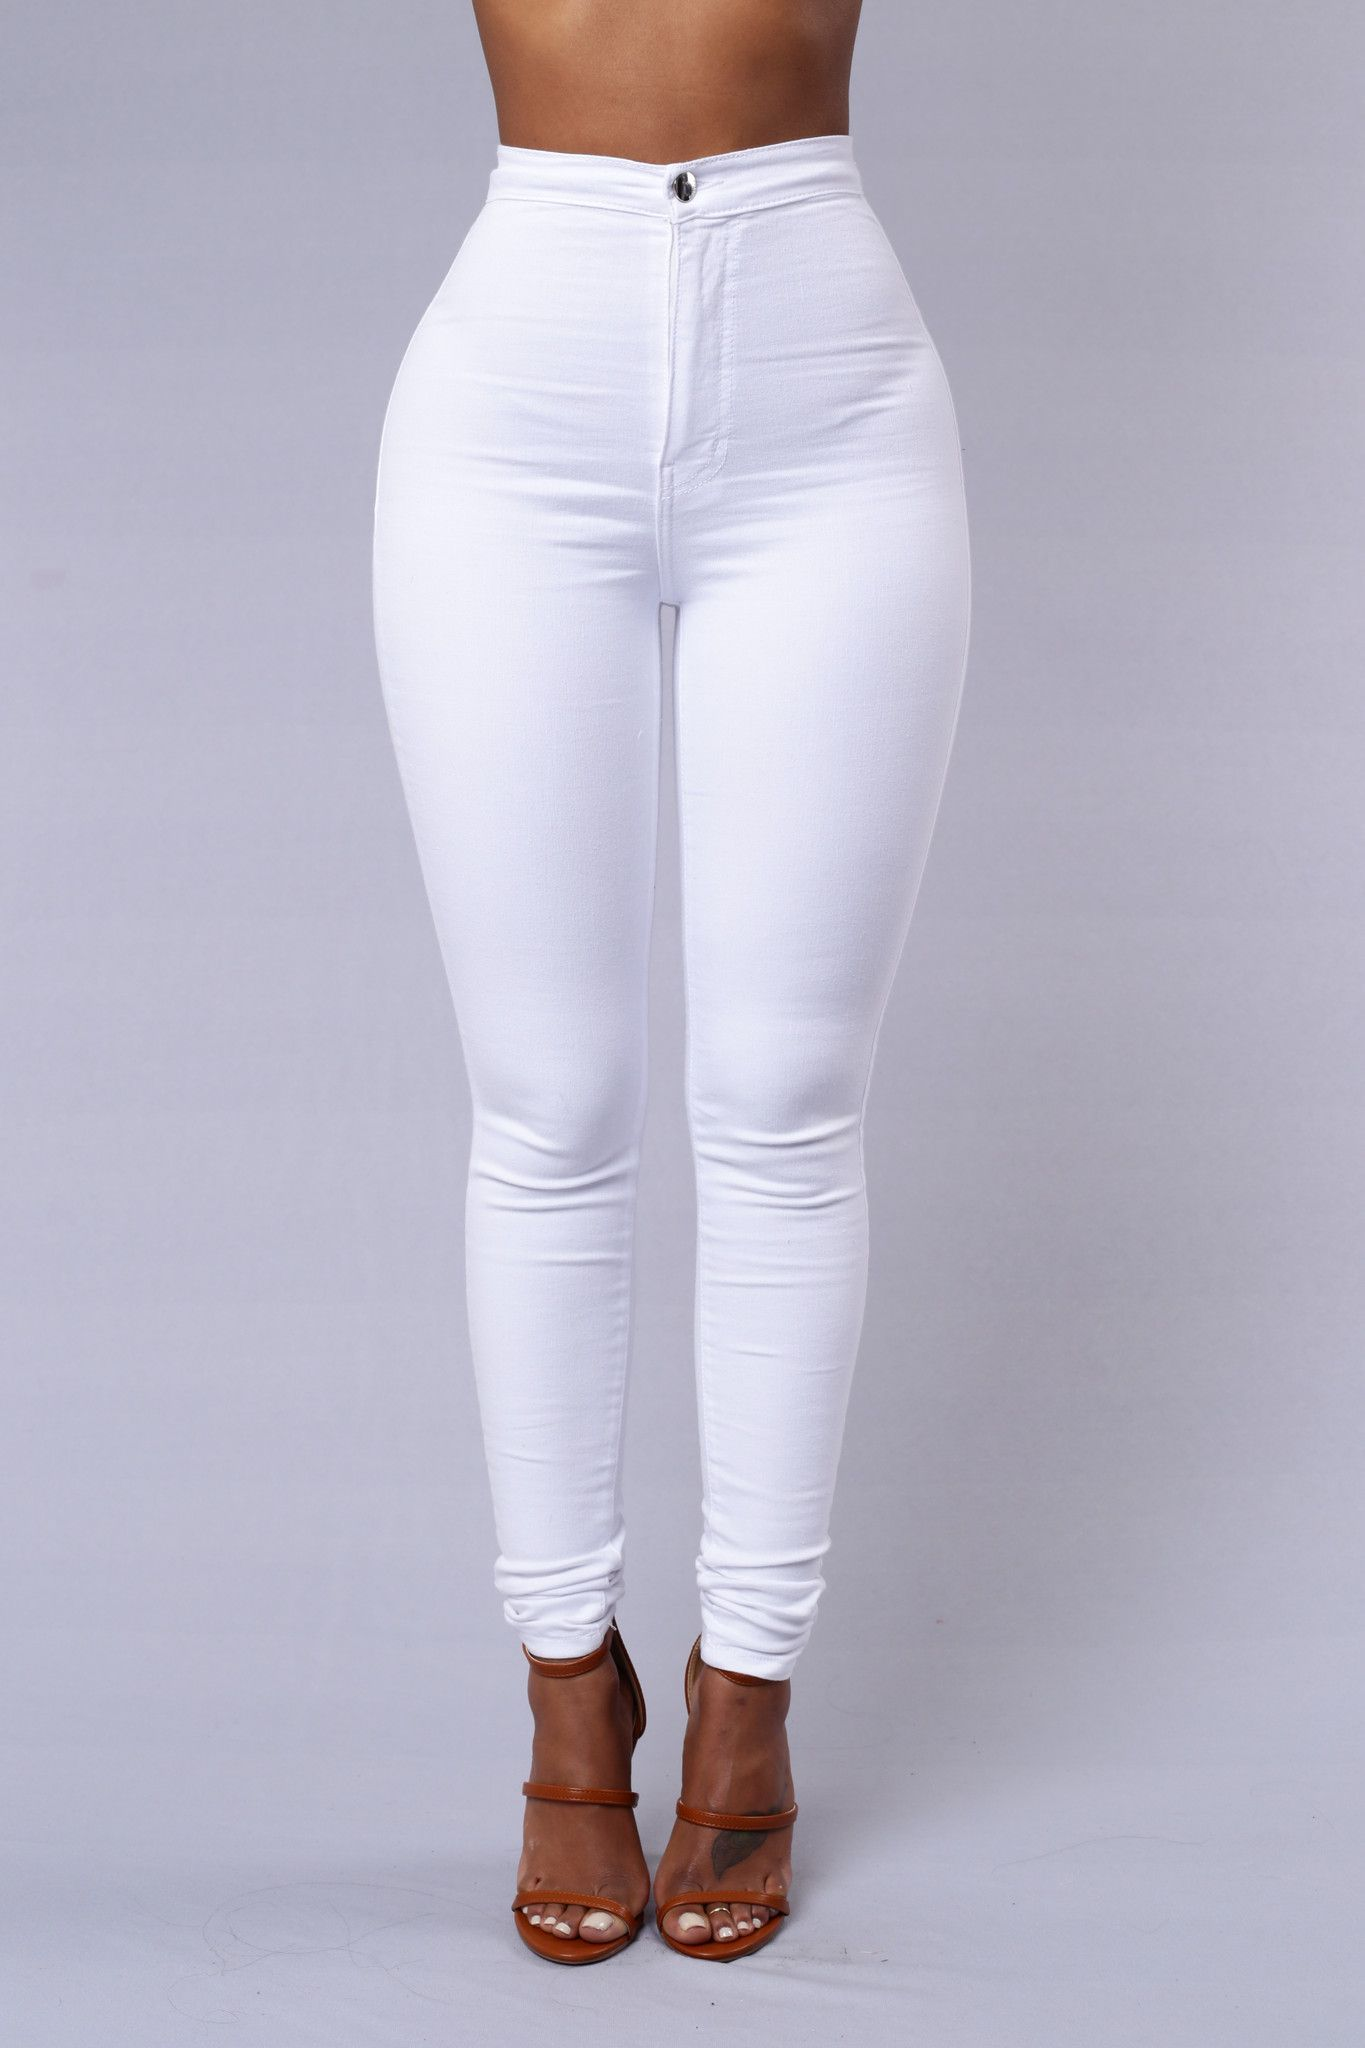 a3386da164e62e Super High Waisted - Round Pocket - Skinny Leg - Great Stretch and Quality  - Made in USA - 97% Cotton 3% Spandex